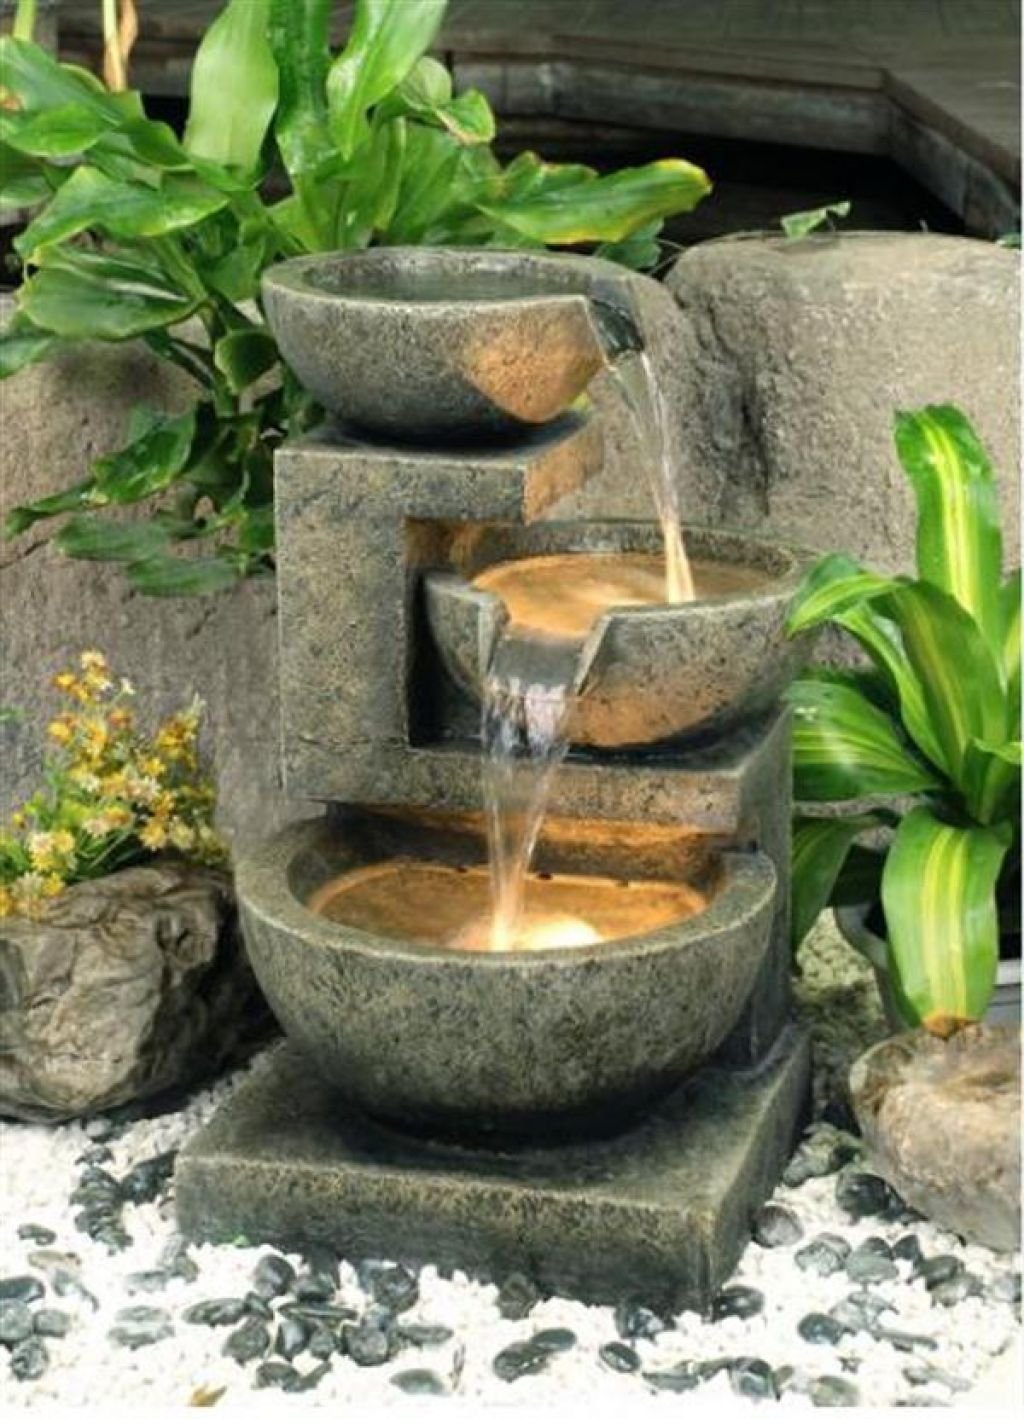 House easy diy project homemade water fountains for Home water features